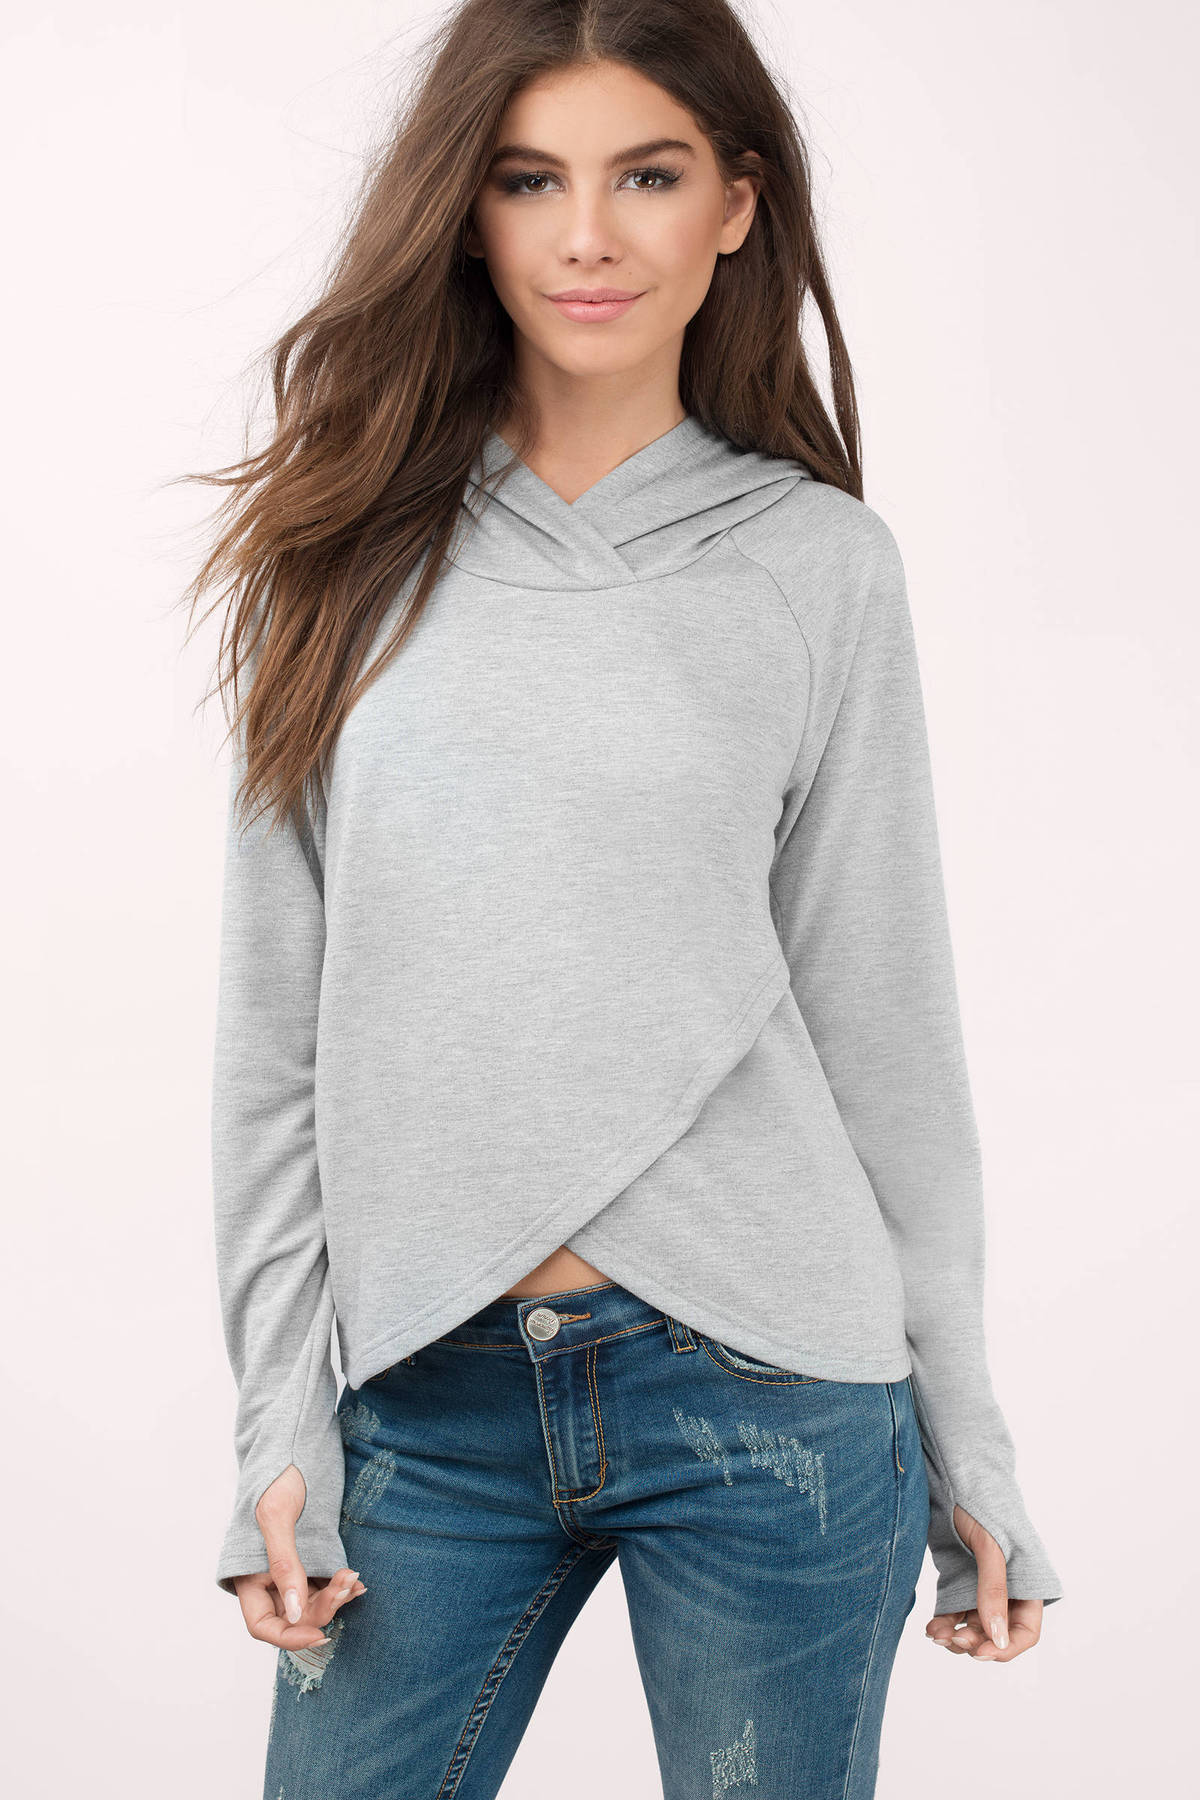 heather-grey-its-our-time-surplice-top@2x.jpg